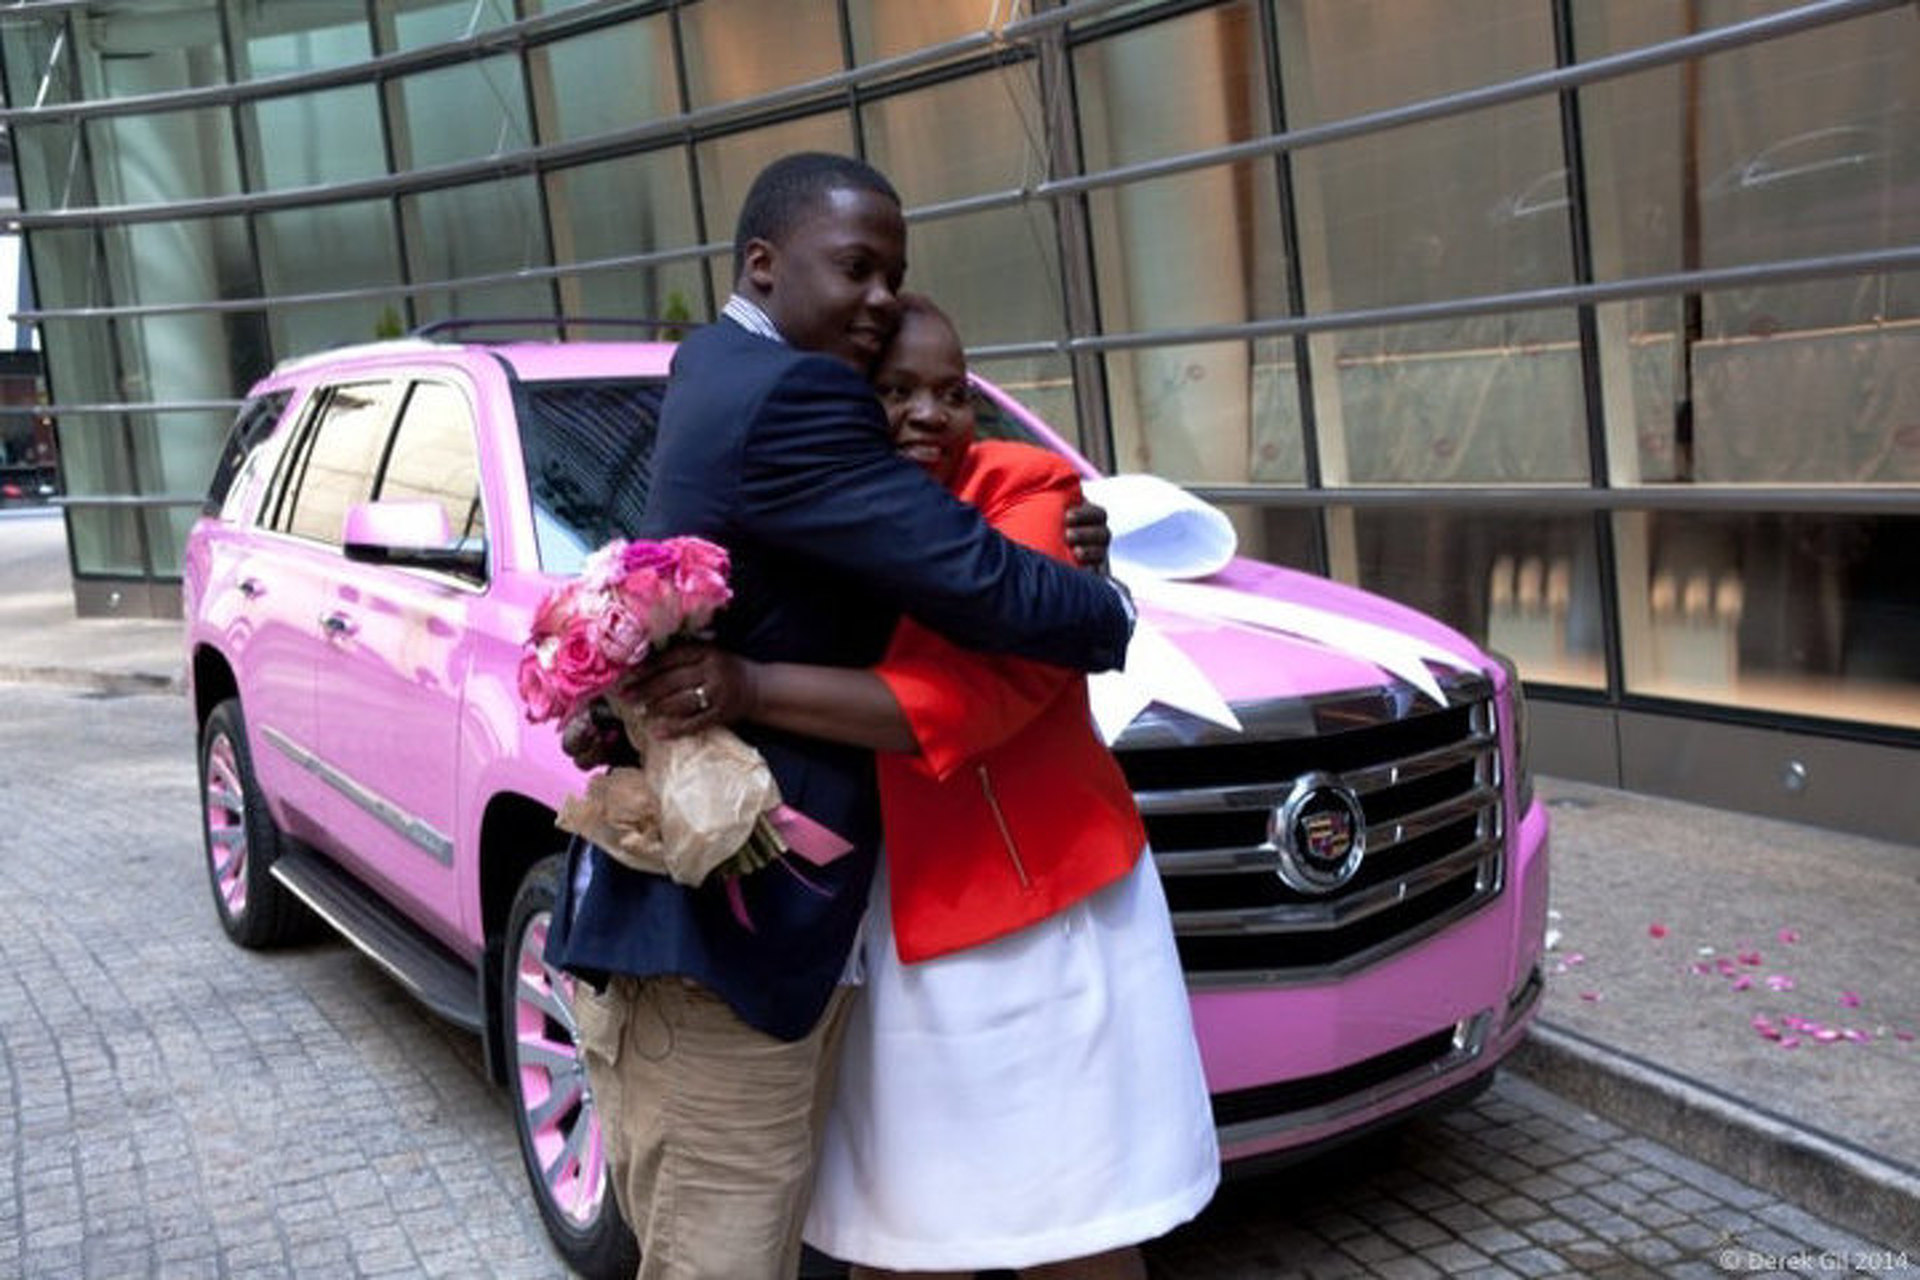 Teddy Bridgewater Got His Mom a Brand New Pink Escalade [video]